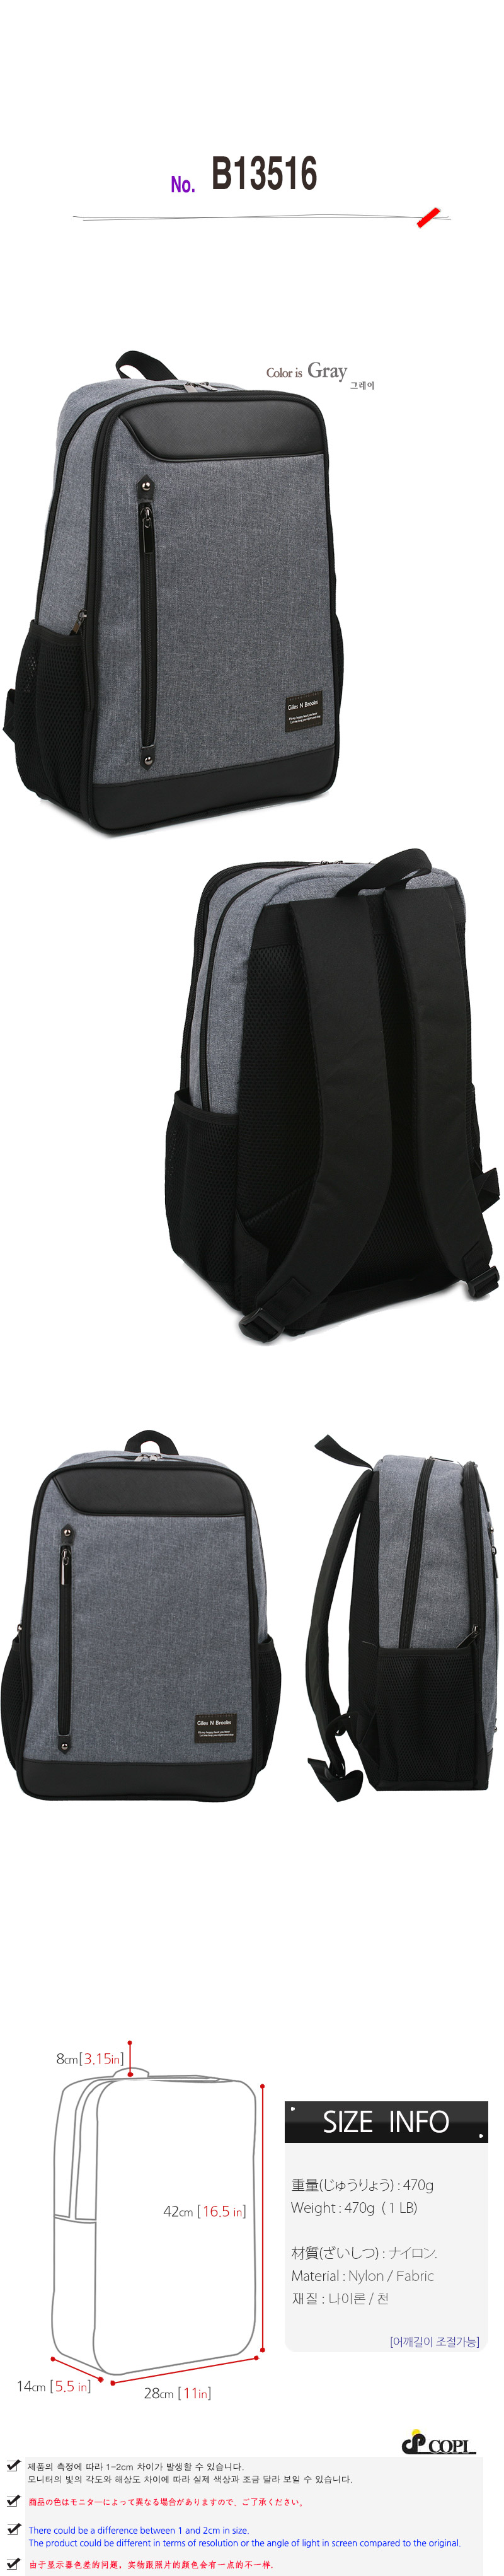 backpack no.B13516view